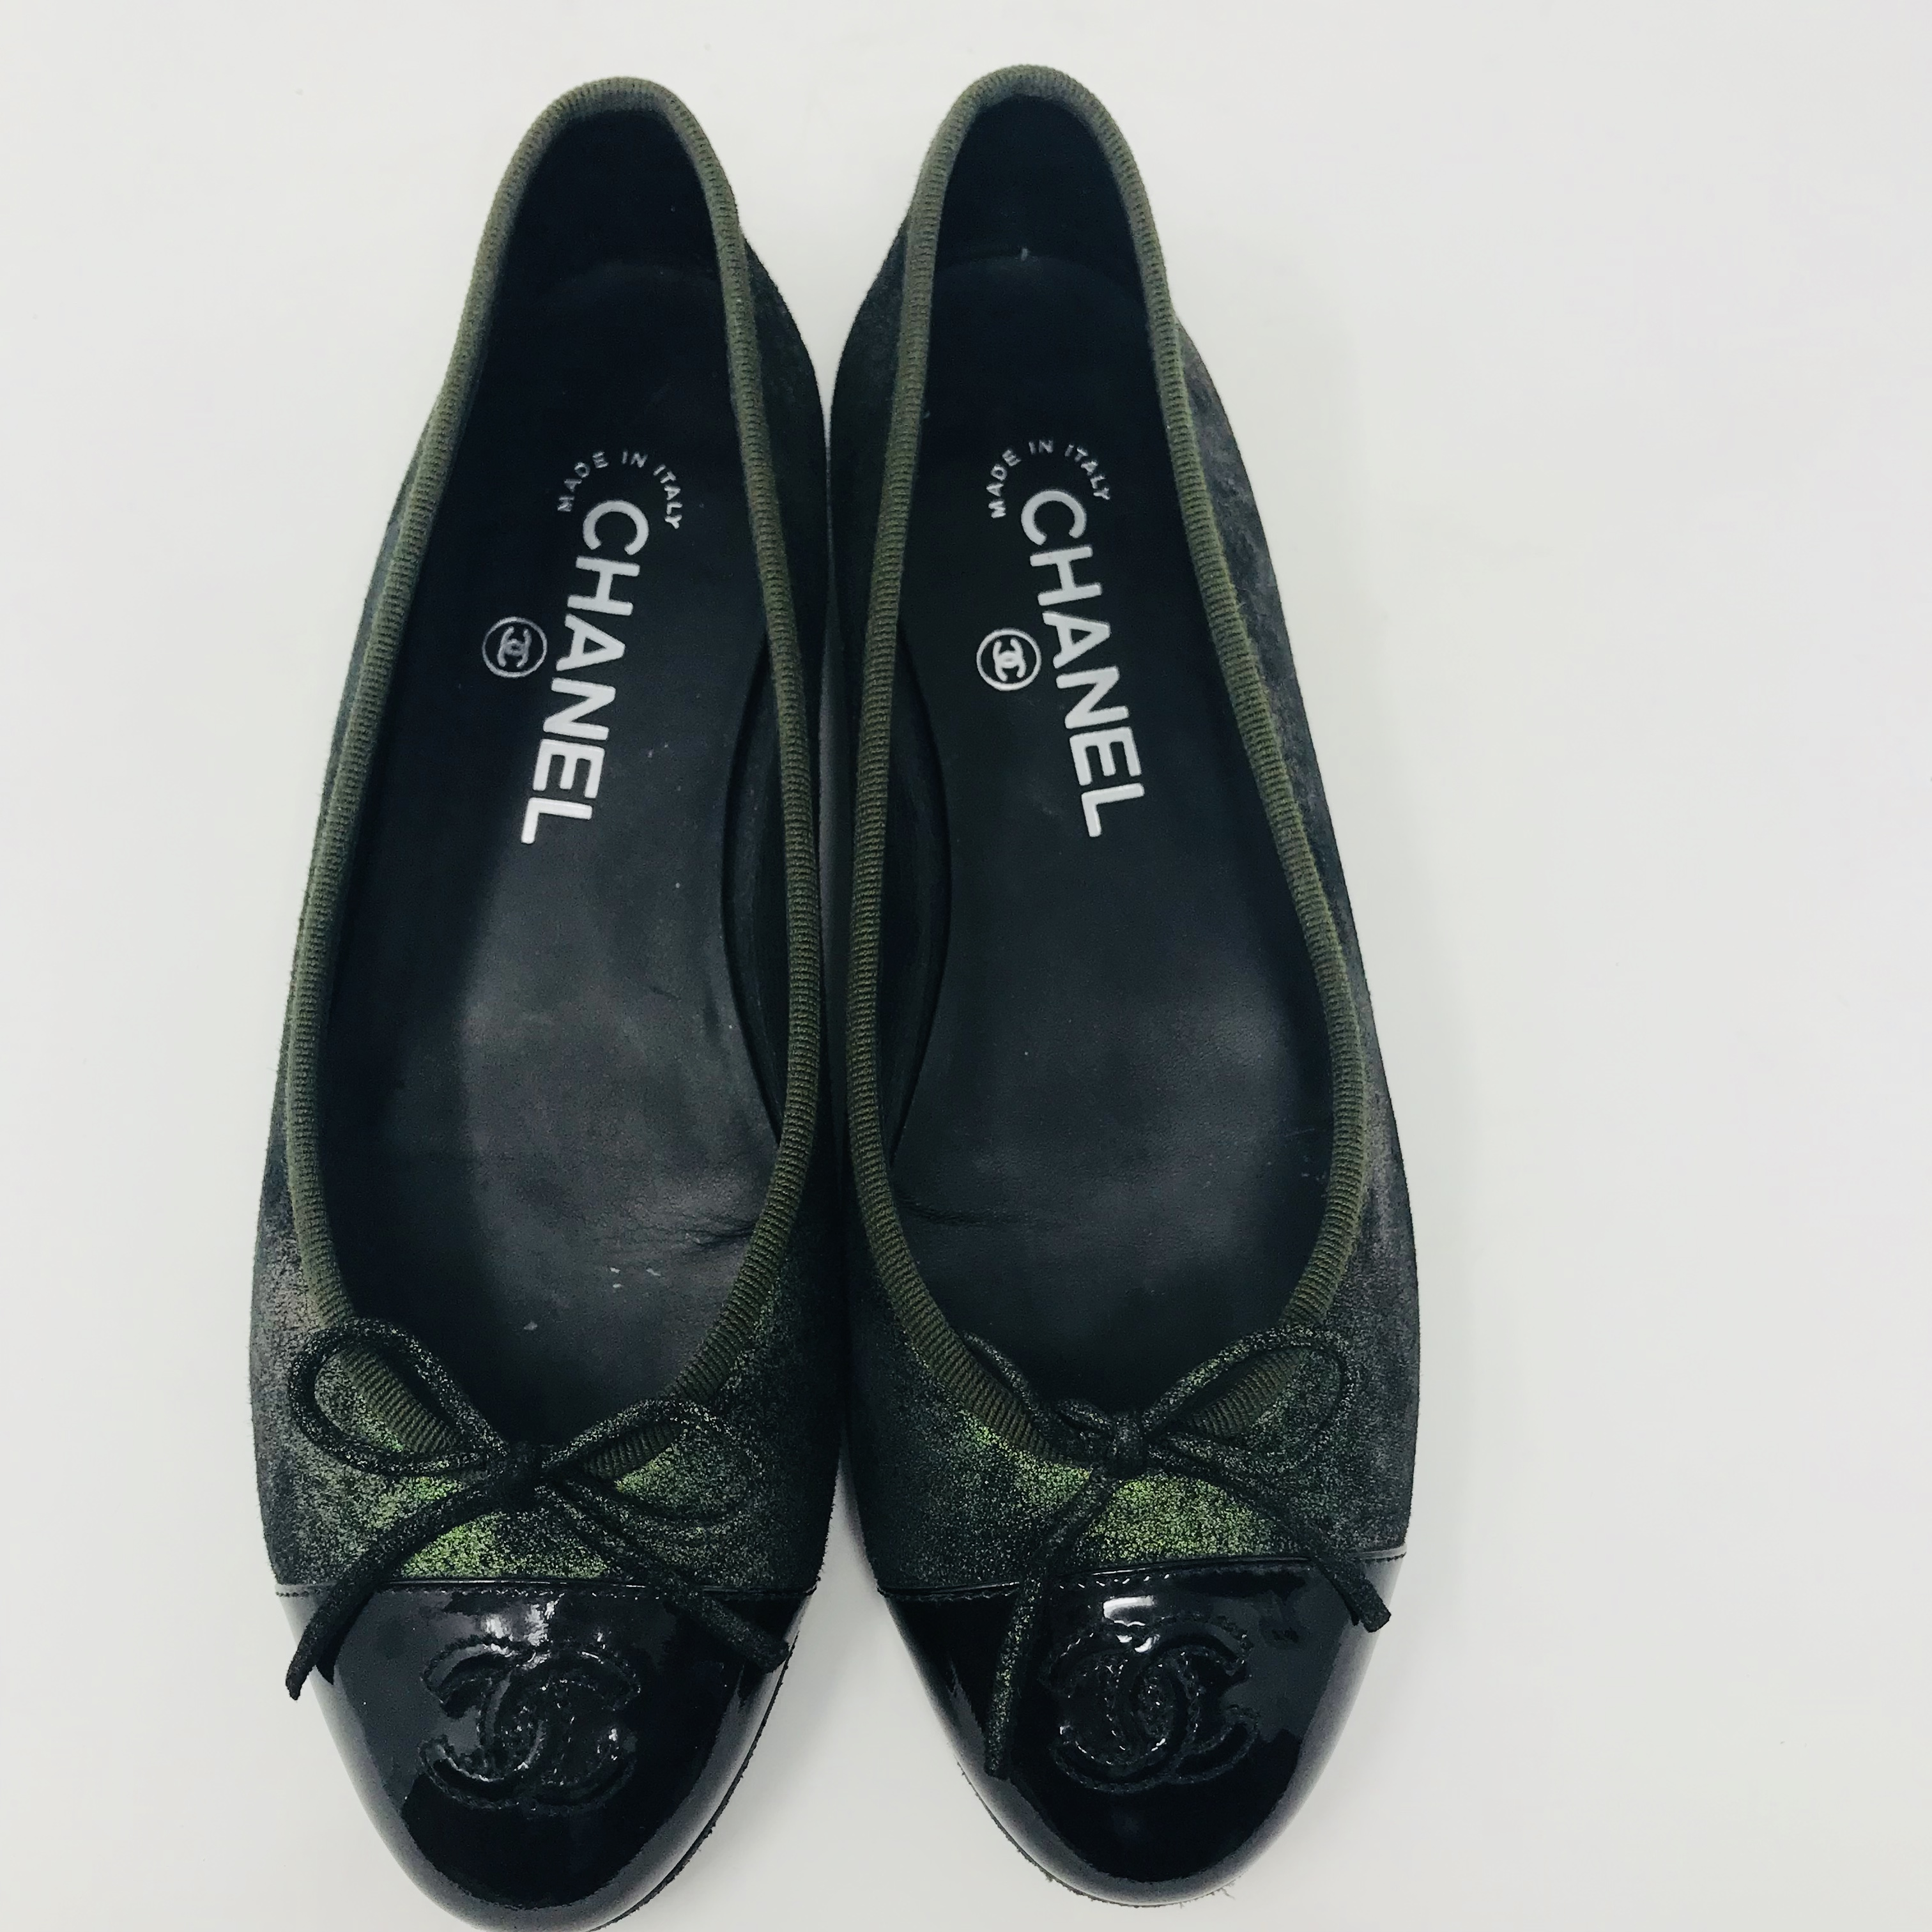 Chanel Shoes Price: $367.99